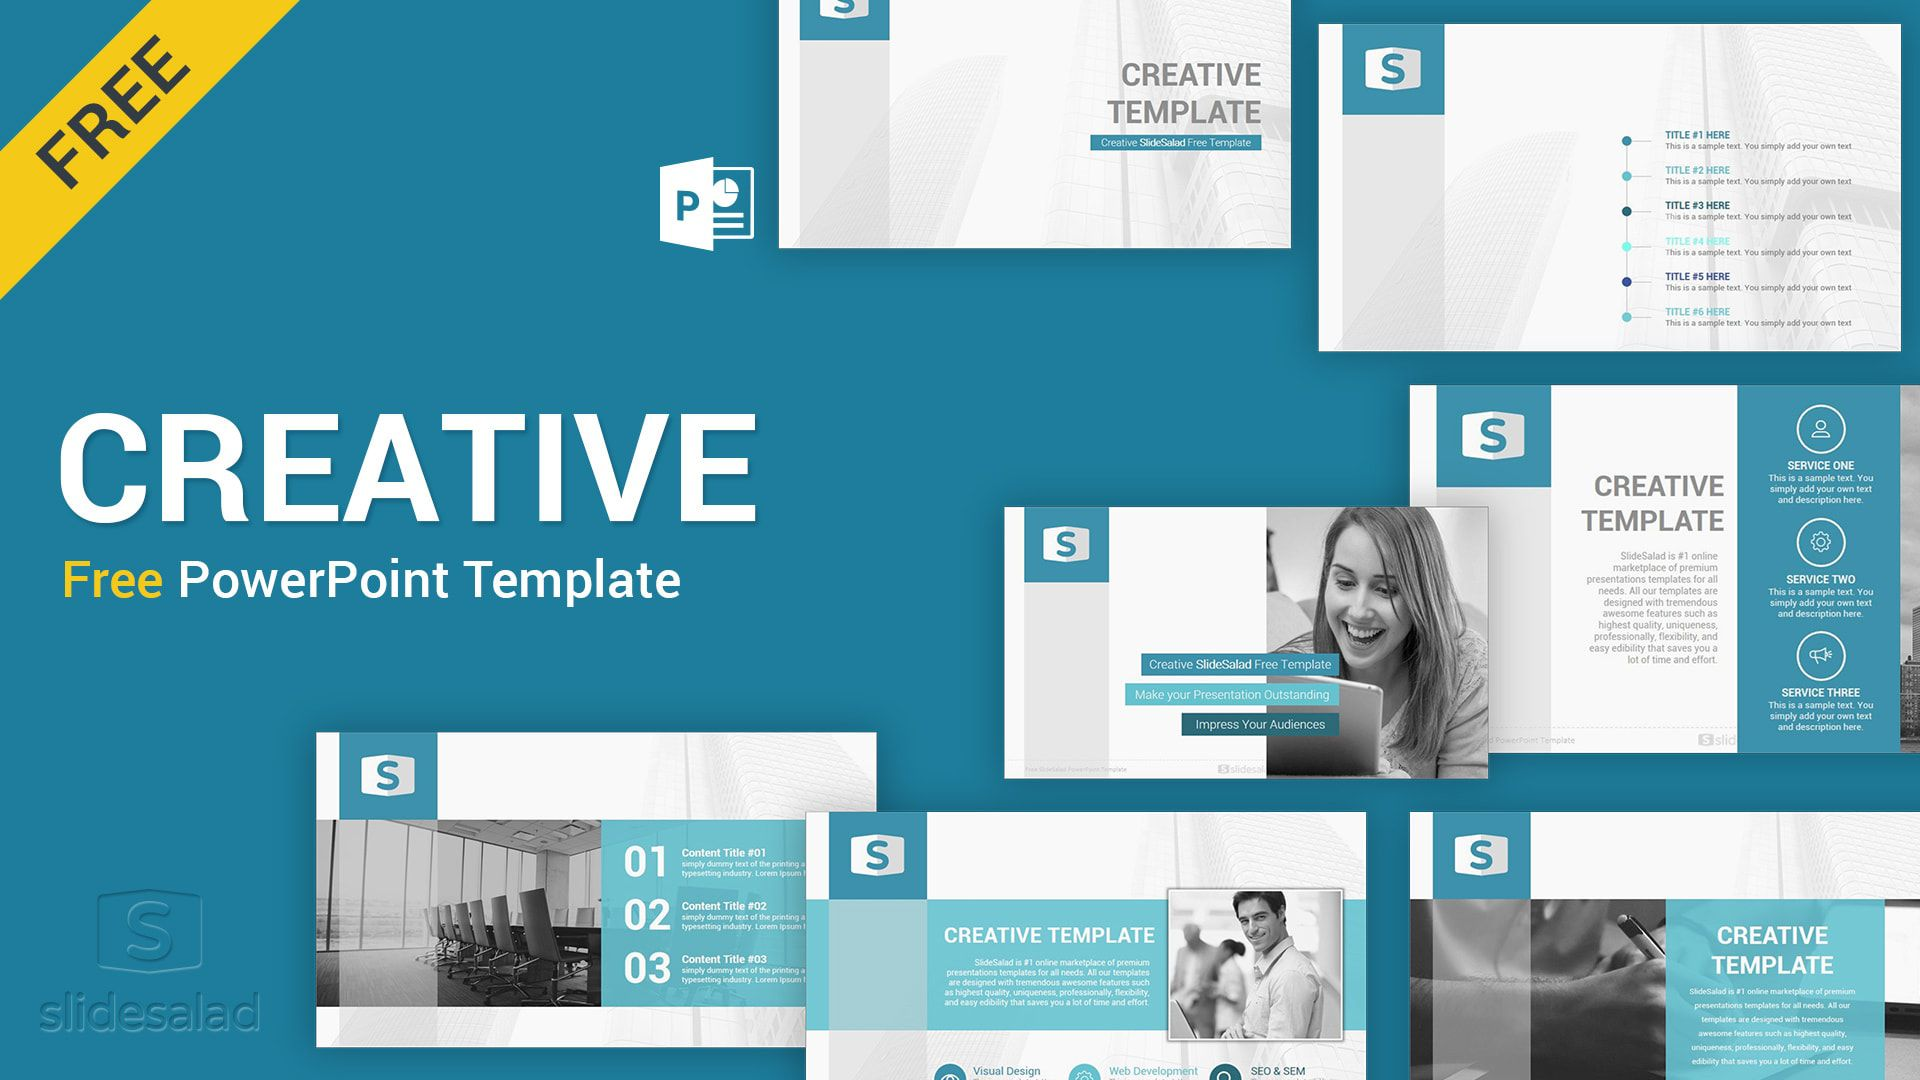 006 Fascinating Free Download Ppt Template For Project Presentation Image  Simple AnimatedFull